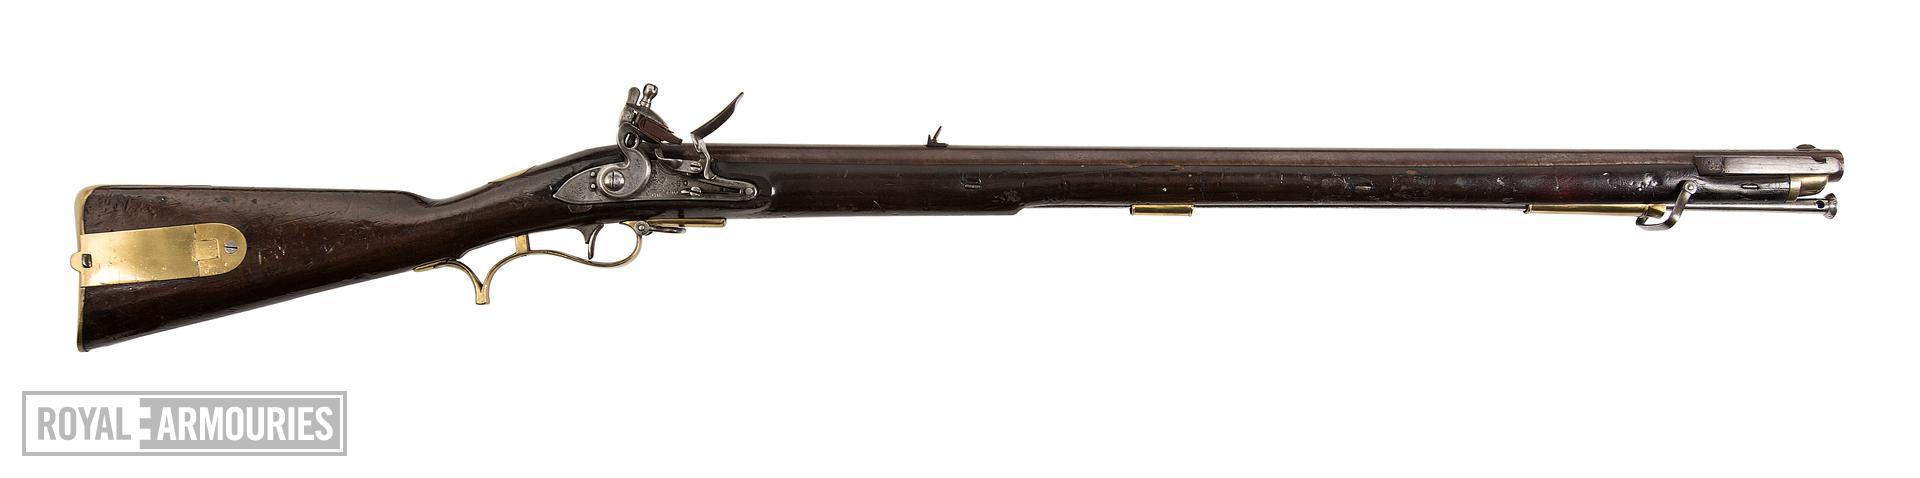 Model 1805 Baker muzzle-loading rifle, Britain, about 1812, by I.Gill (XII.3495)